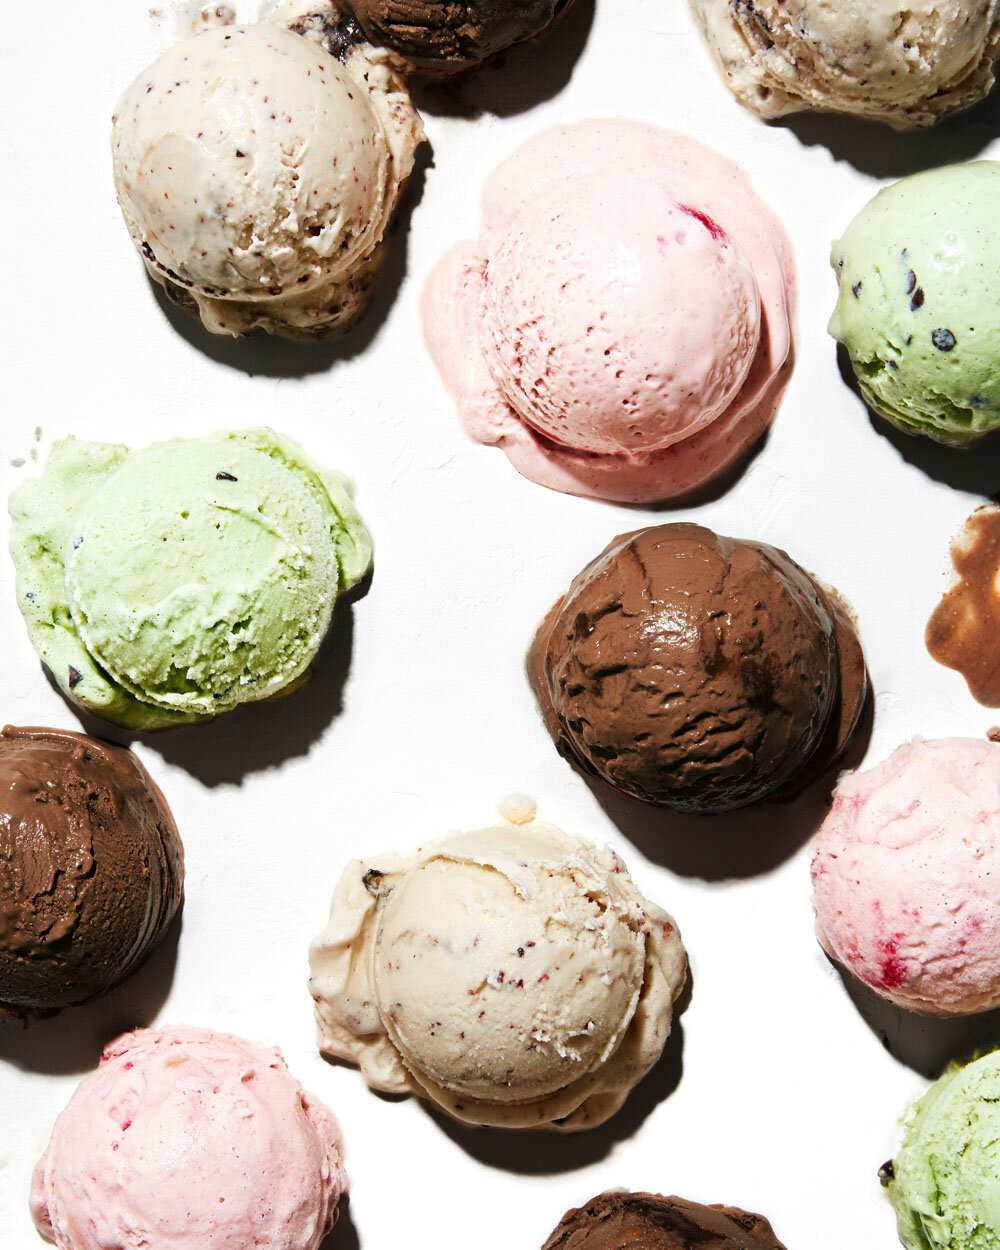 Food Photographer Nyc Emily Hawkes In 2020 Vegan Ice Cream Brands Vegan Ice Cream Ice Cream Brands